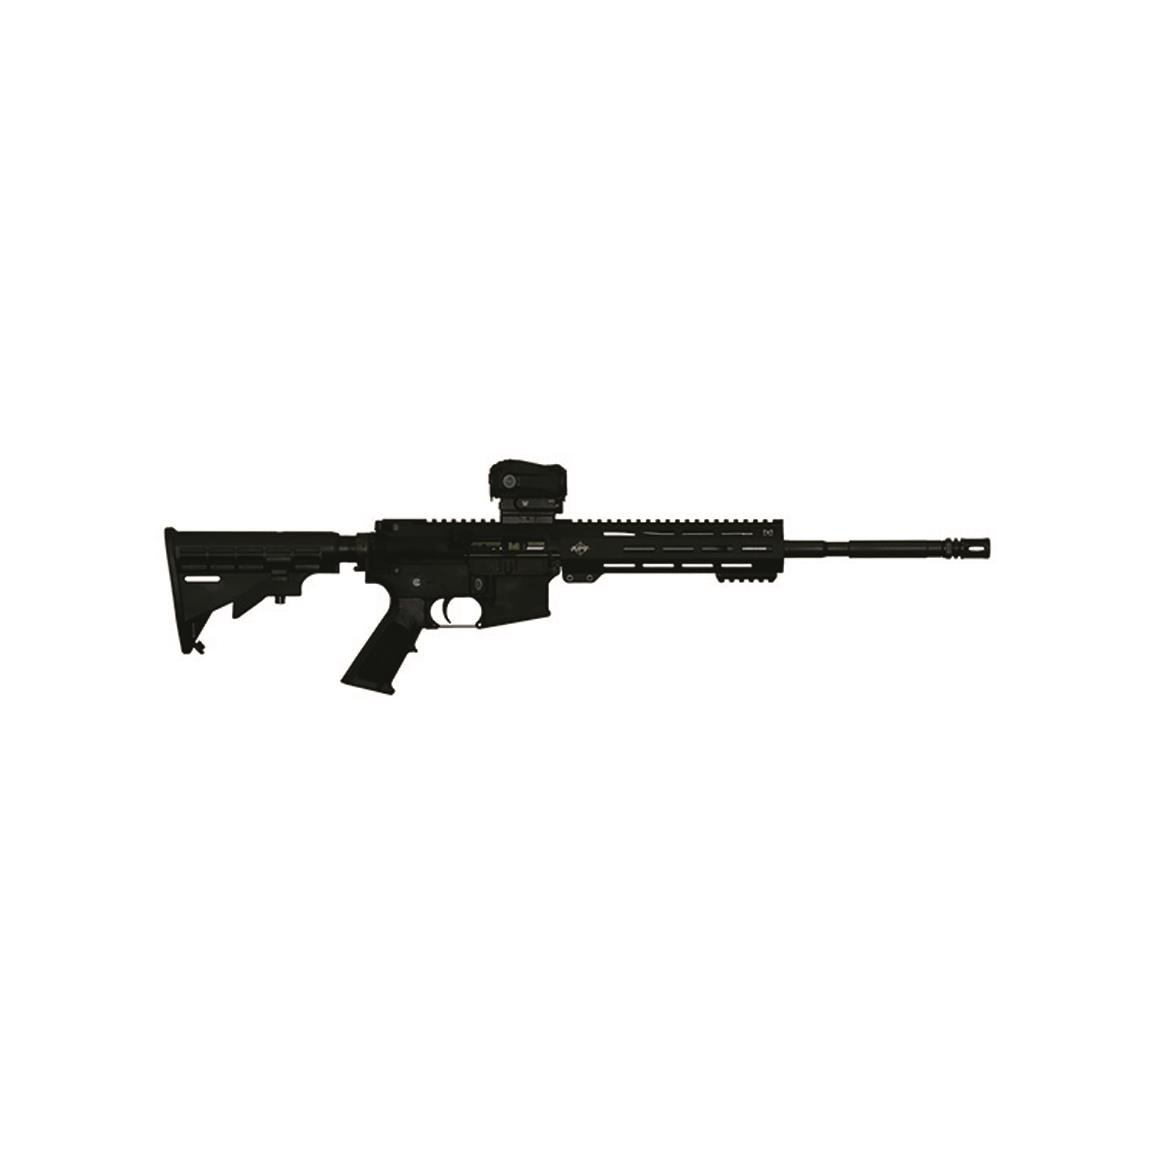 APF Alpha Carbine AR-15, Semi-Automatic, .223 Wylde, Vortex SPARC AR Red Dot, 30+1 Rounds